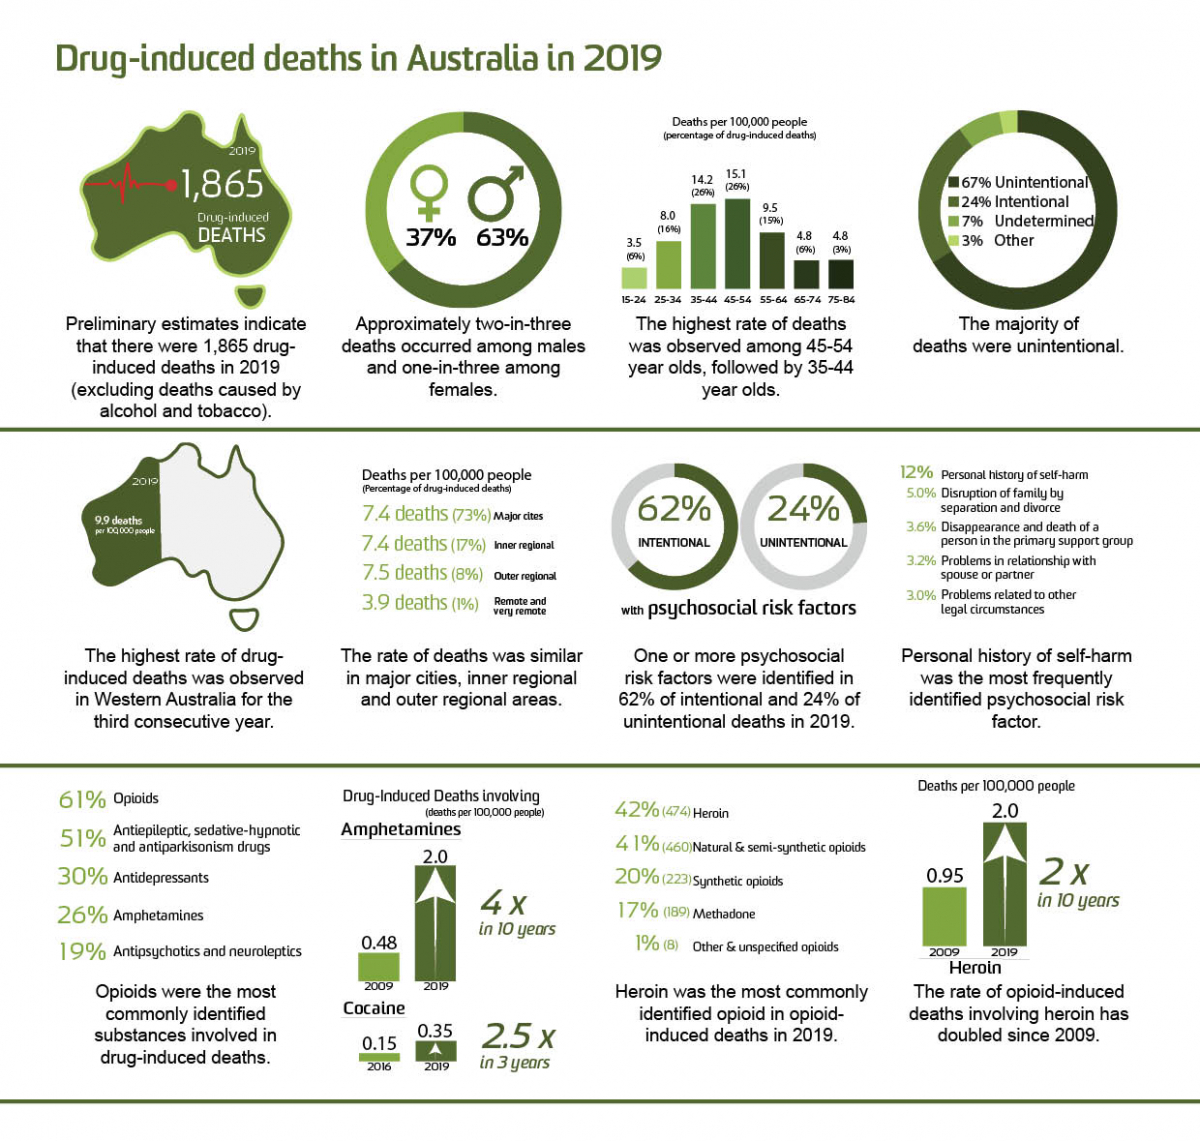 image - Trends in Drug-Induced Deaths in Australia, 1997-2019